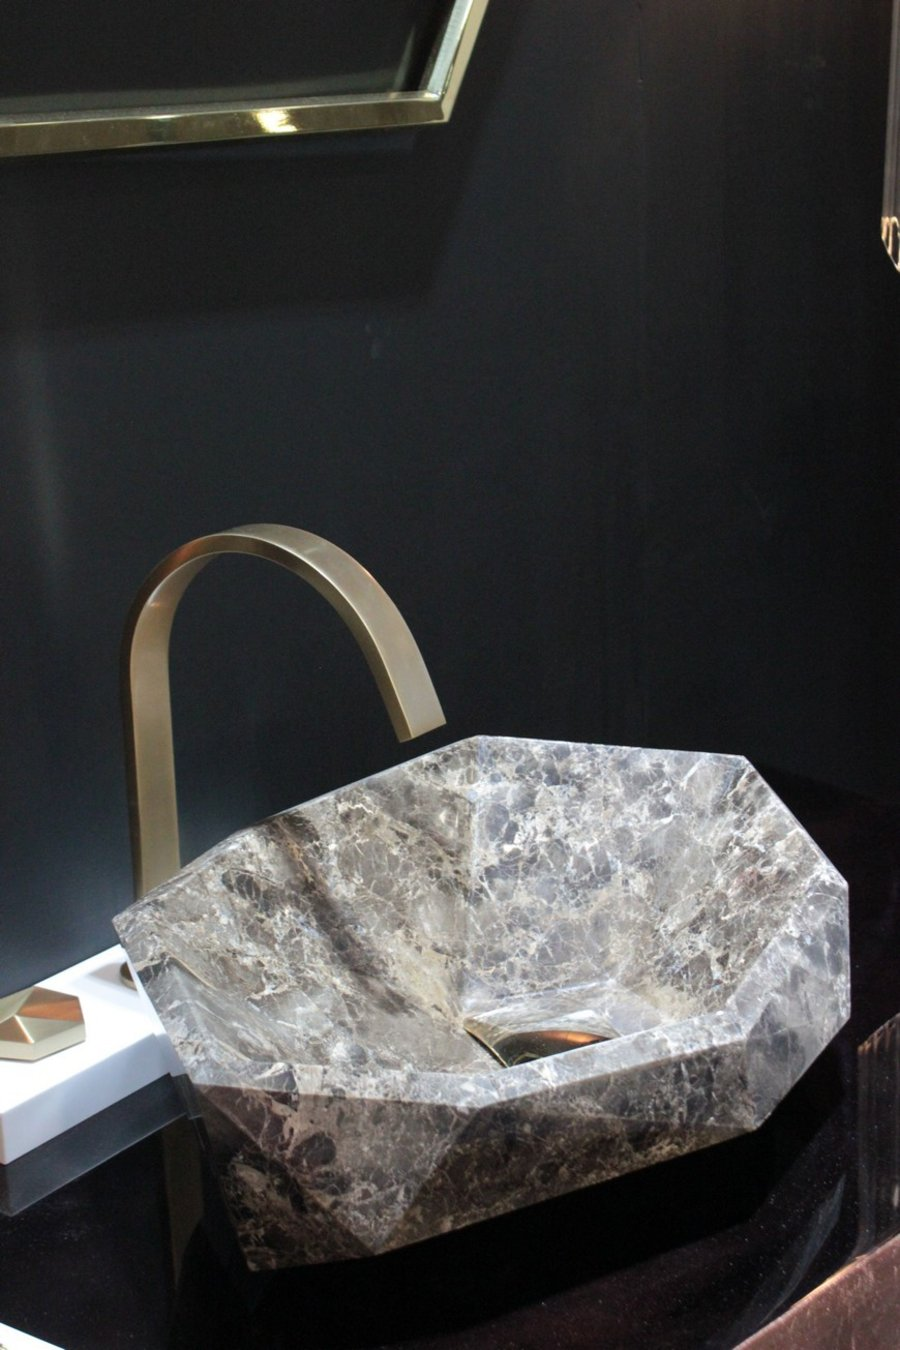 Cersaie 2019 - Highlights from the Luxury Bathroom Event cersaie 2019 Cersaie 2019 – Highlights from the Luxury Bathroom Event Cersaie 2019 Highlights from the Luxury Bathroom Event 7